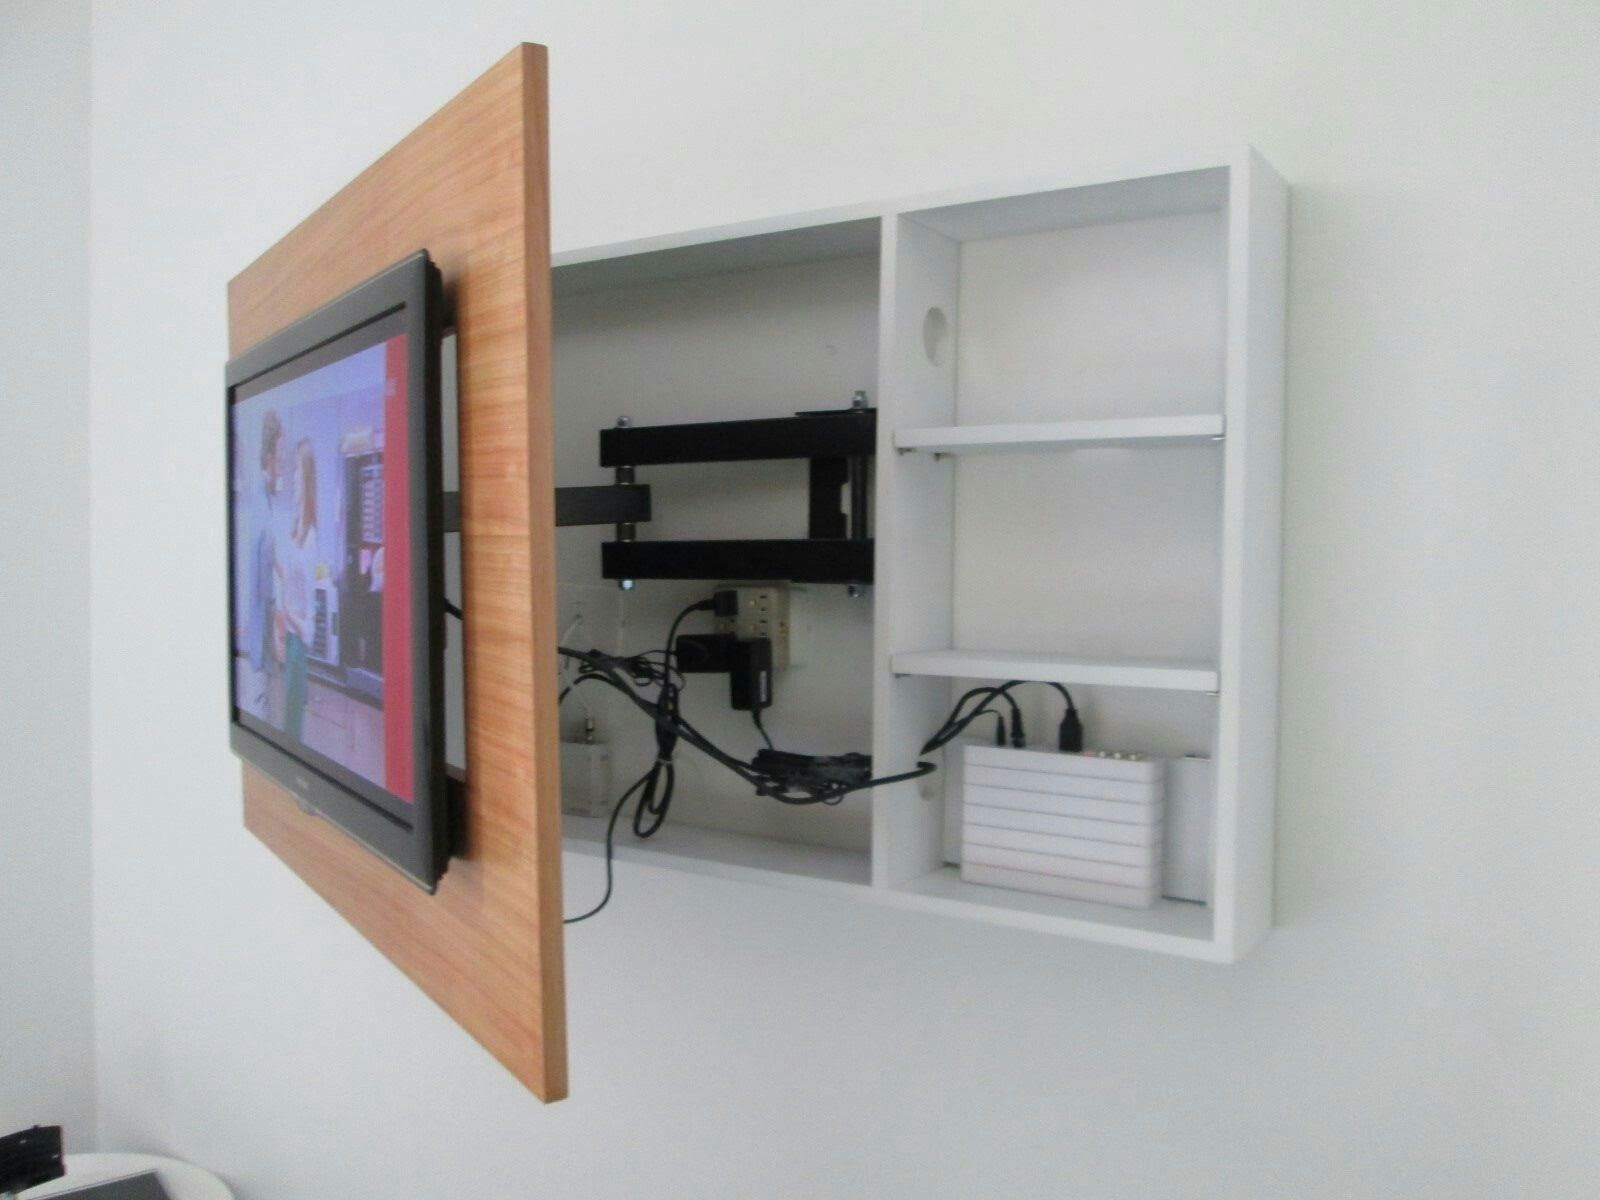 Mueble Para Tv Home Decor Pinterest Muebles Para Tv Tv Y  # Muebles Fiasini